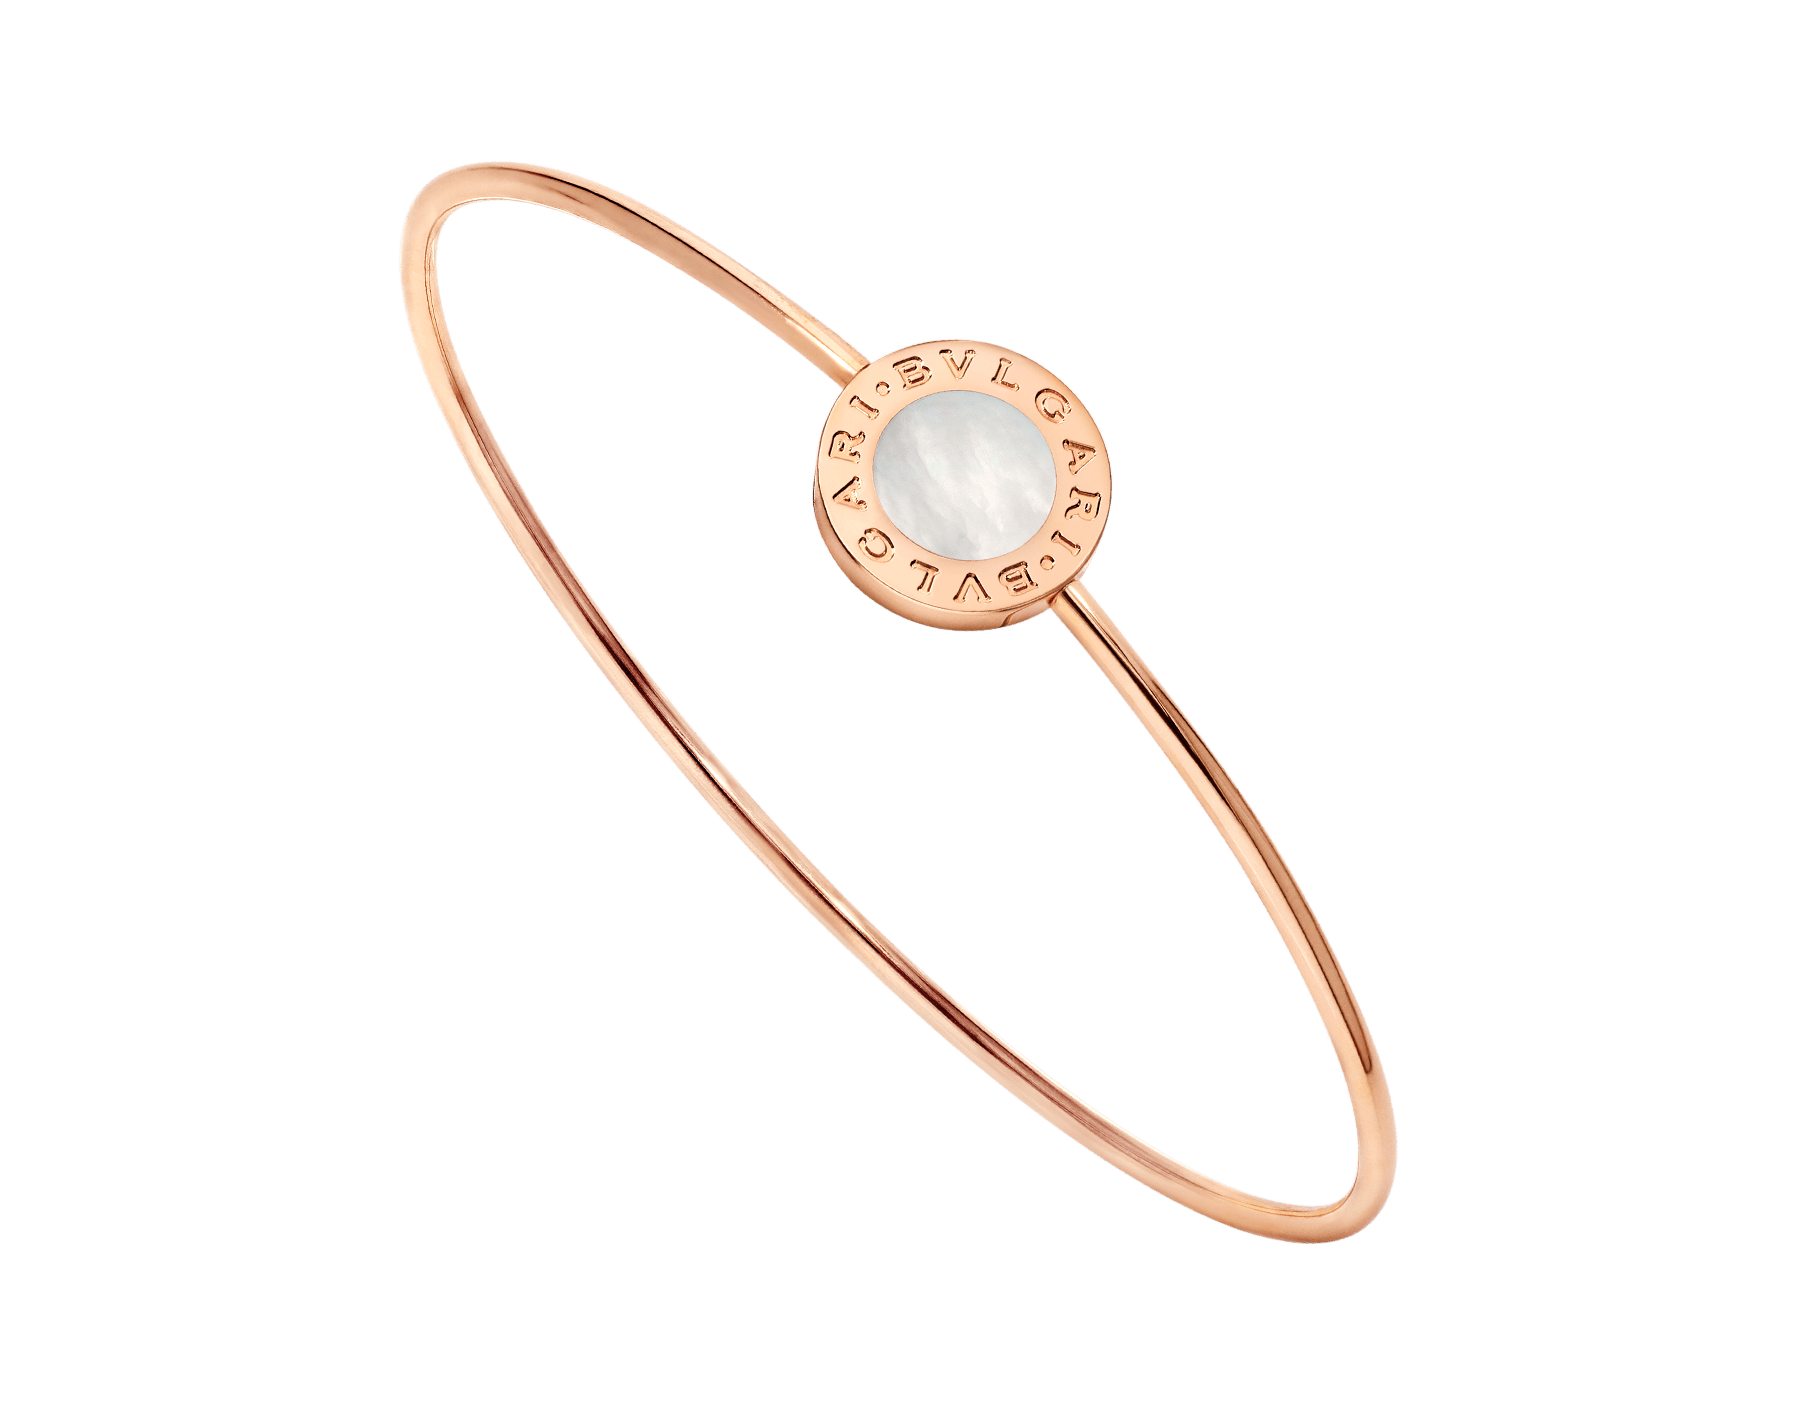 BVLGARI BVLGARI 18 kt rose gold bracelet set with mother-of-pearl element BR858624 image 1